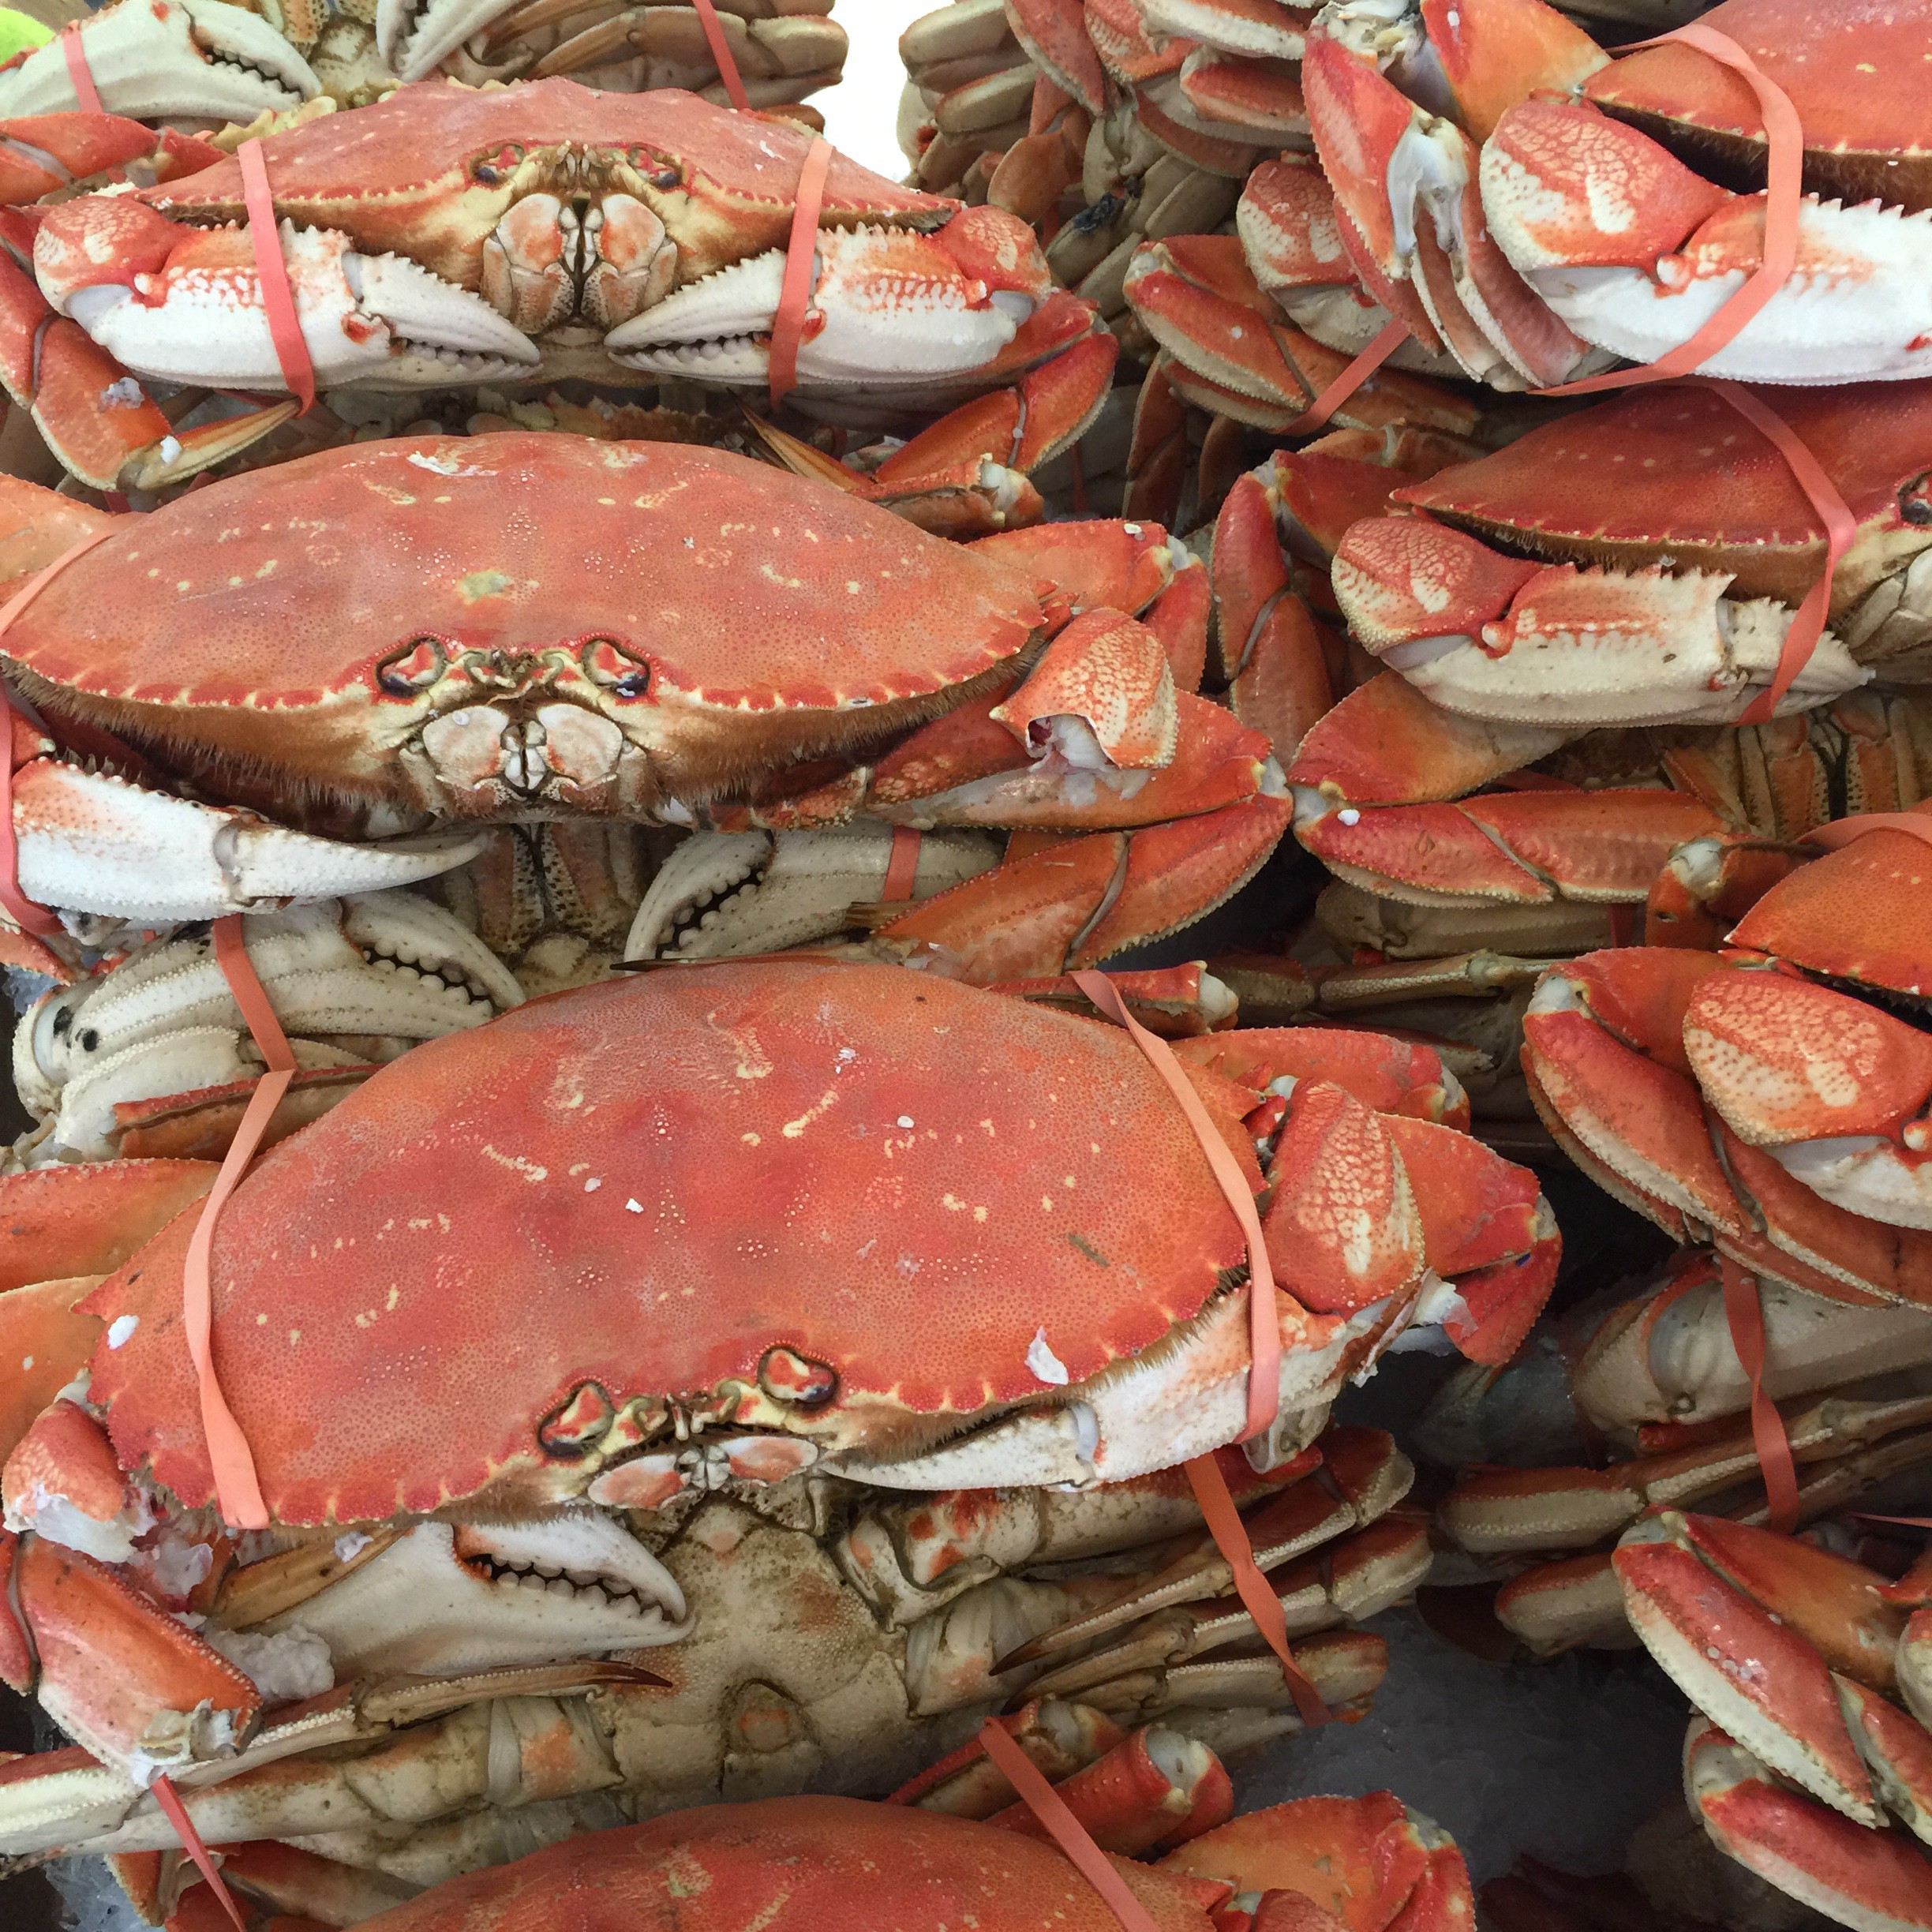 The dungeness crab are huge!